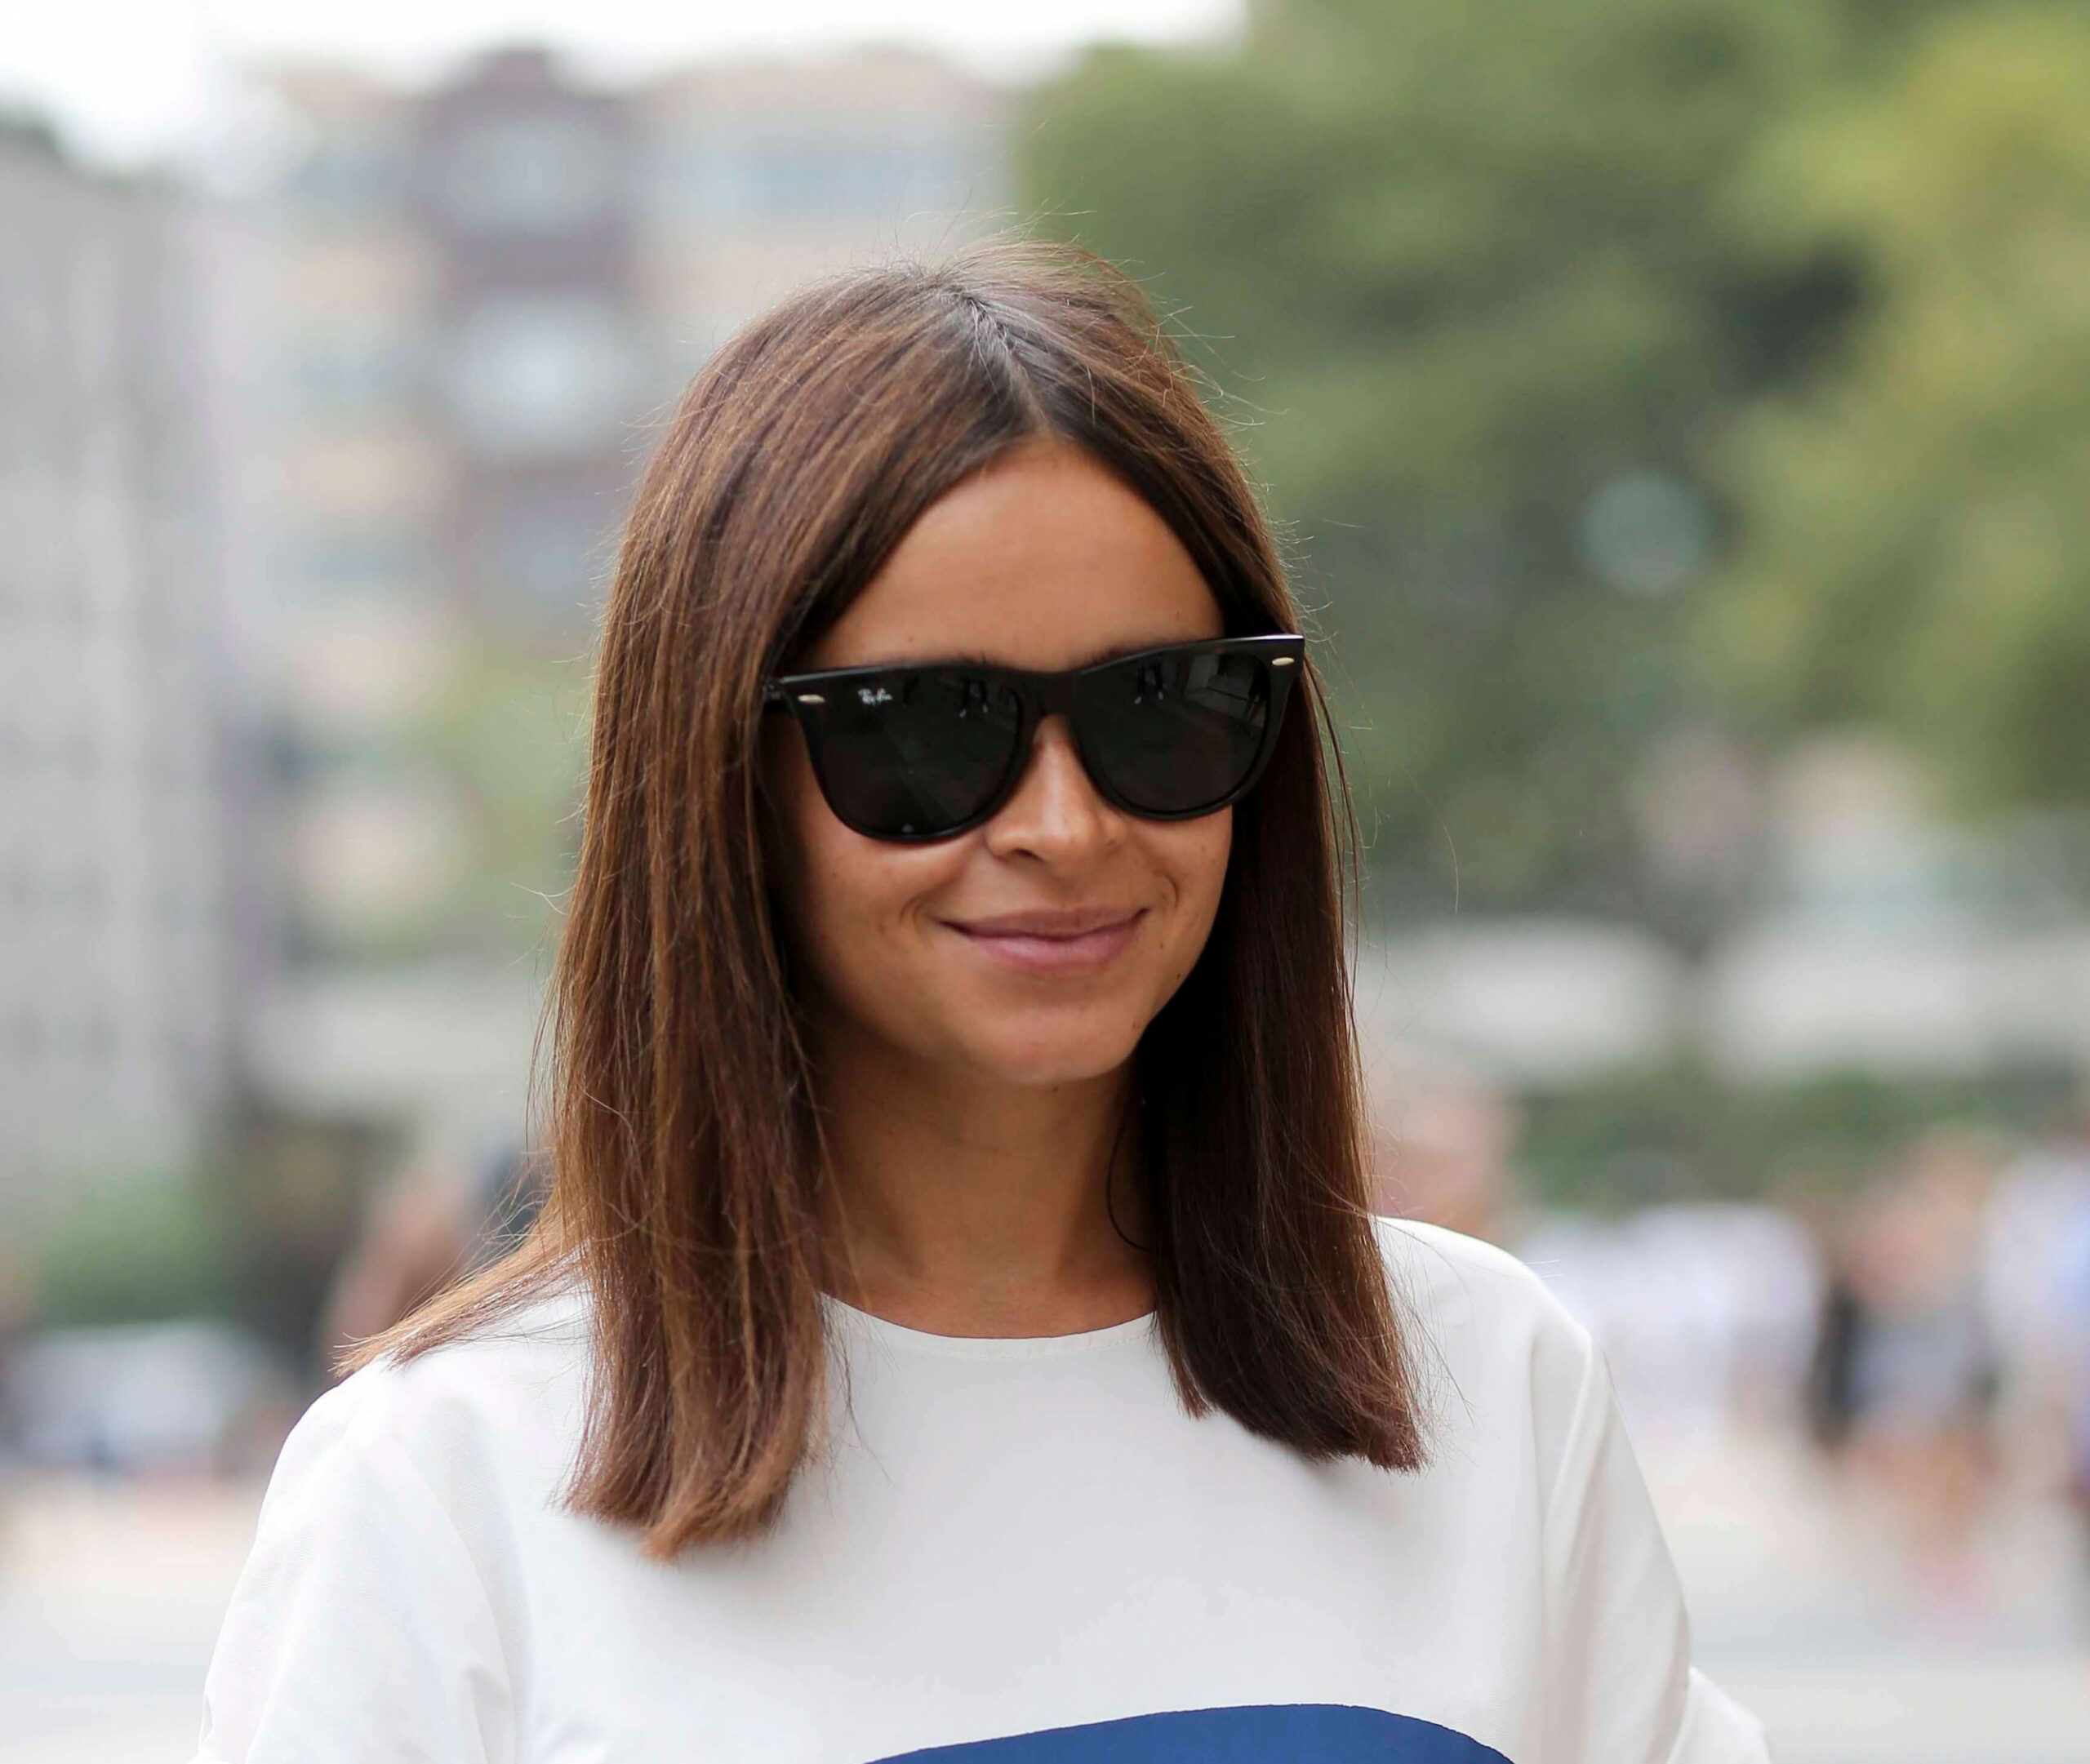 Medium length hairstyles: 12 effortlessly cool hair ideas to try